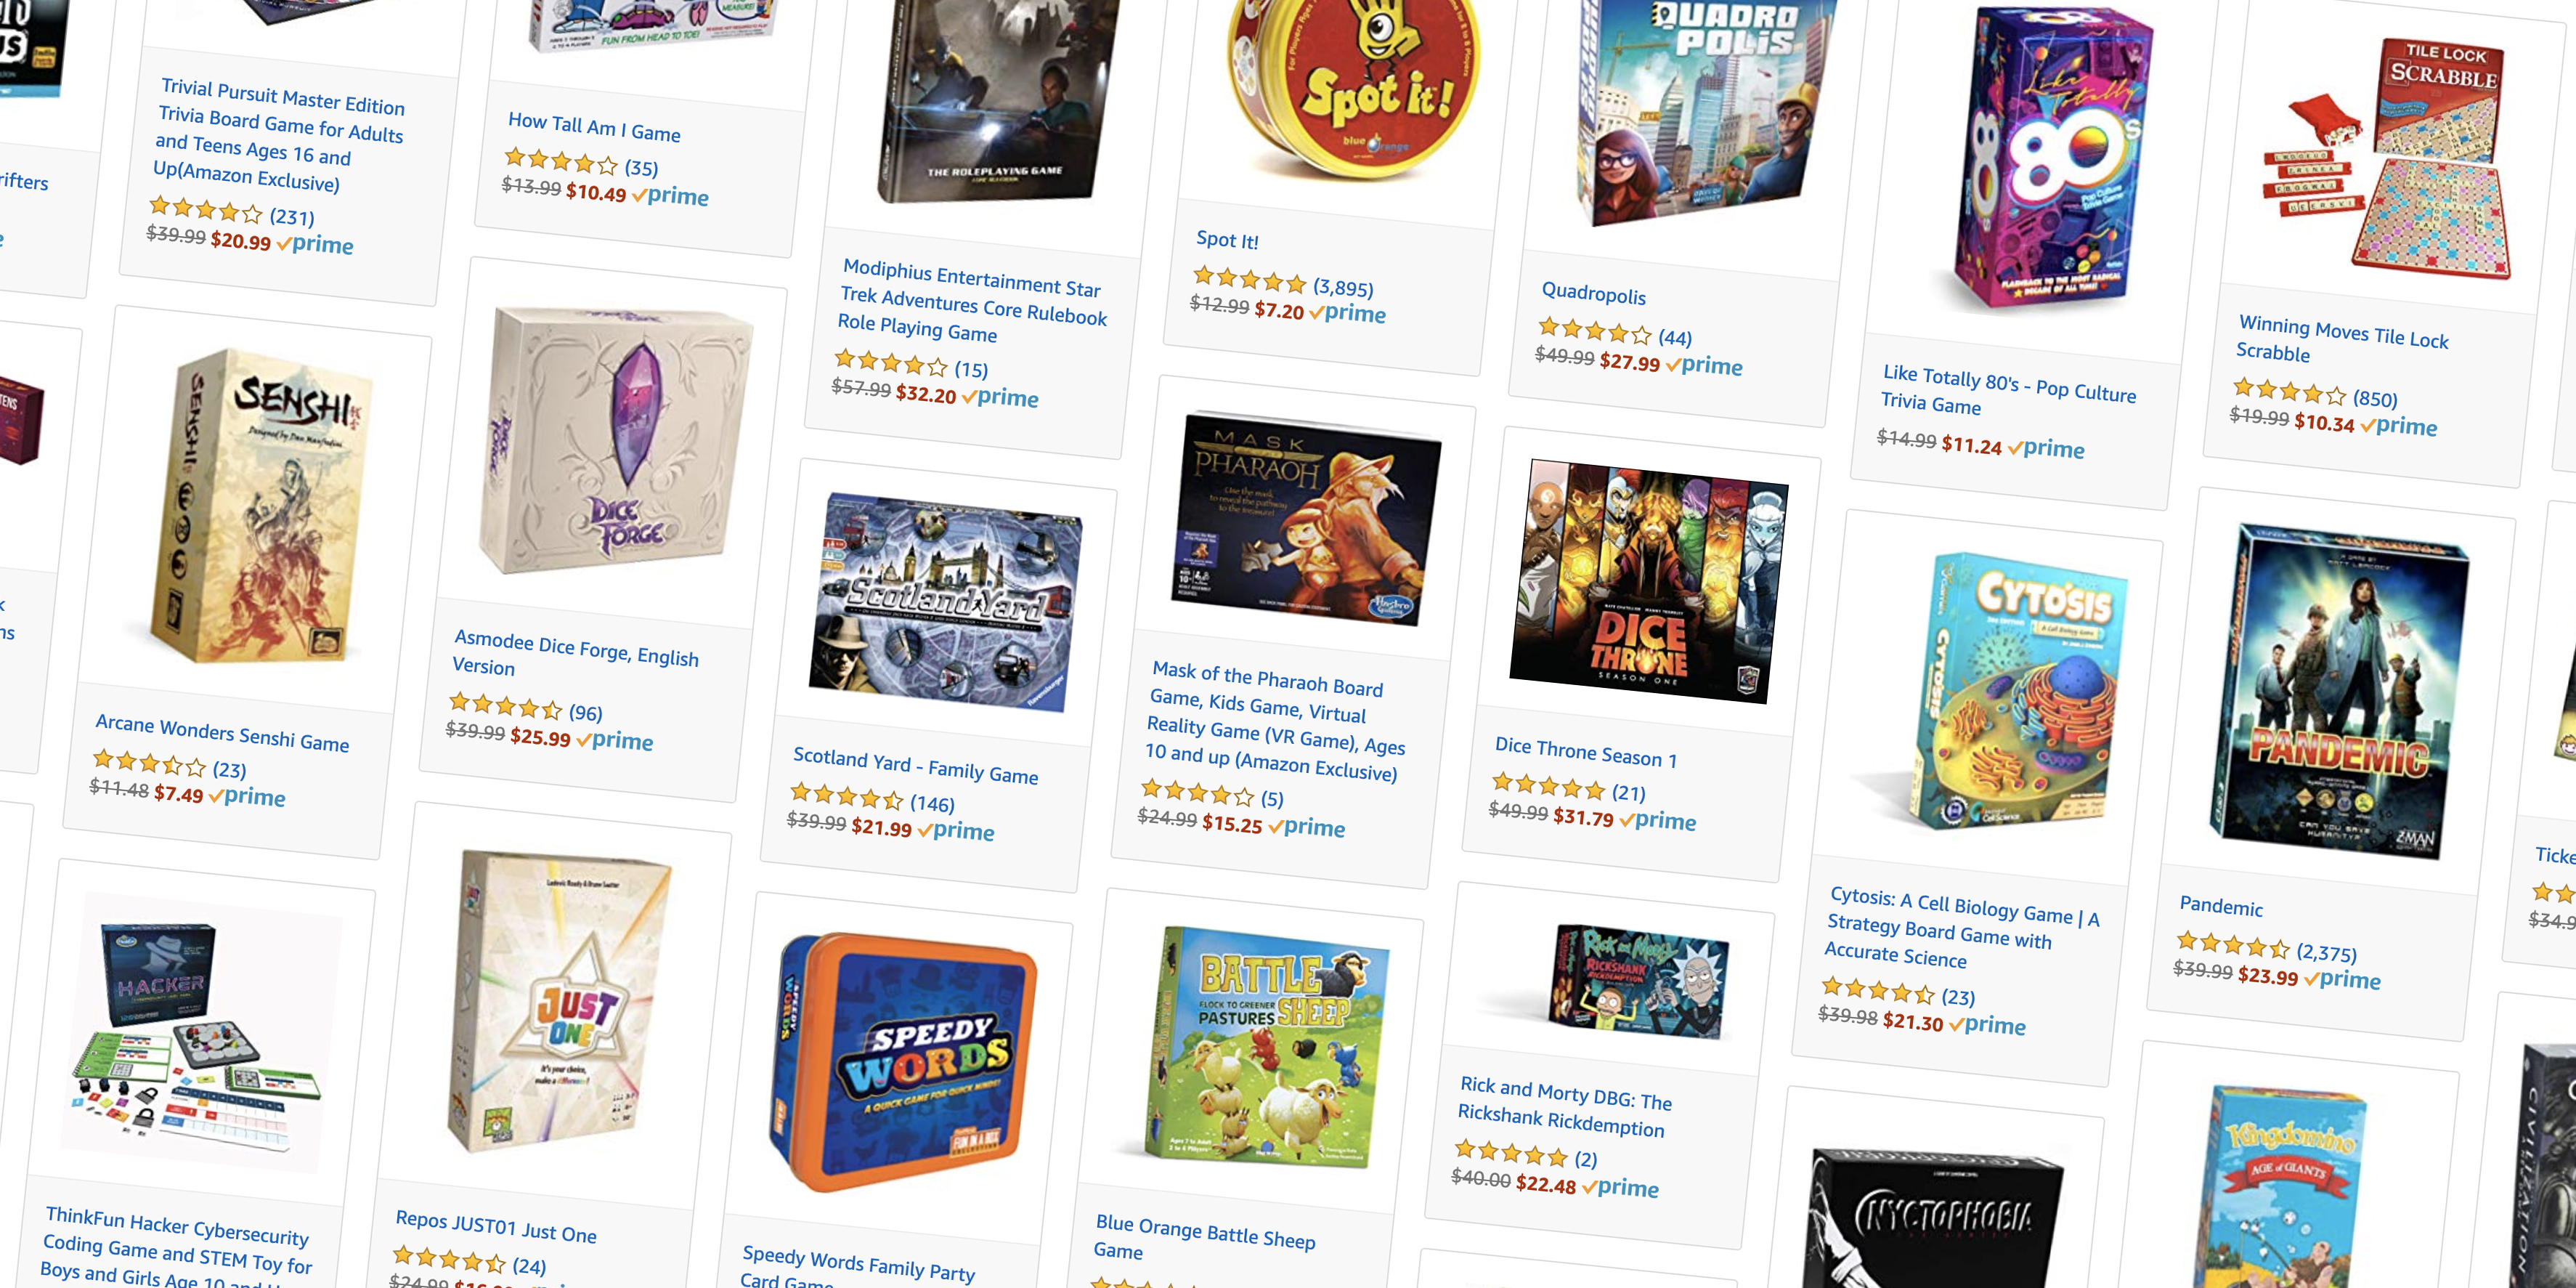 Amazon's board game Gold Box starts at $4: Nintendo Monopoly, Jena, Catan, much more